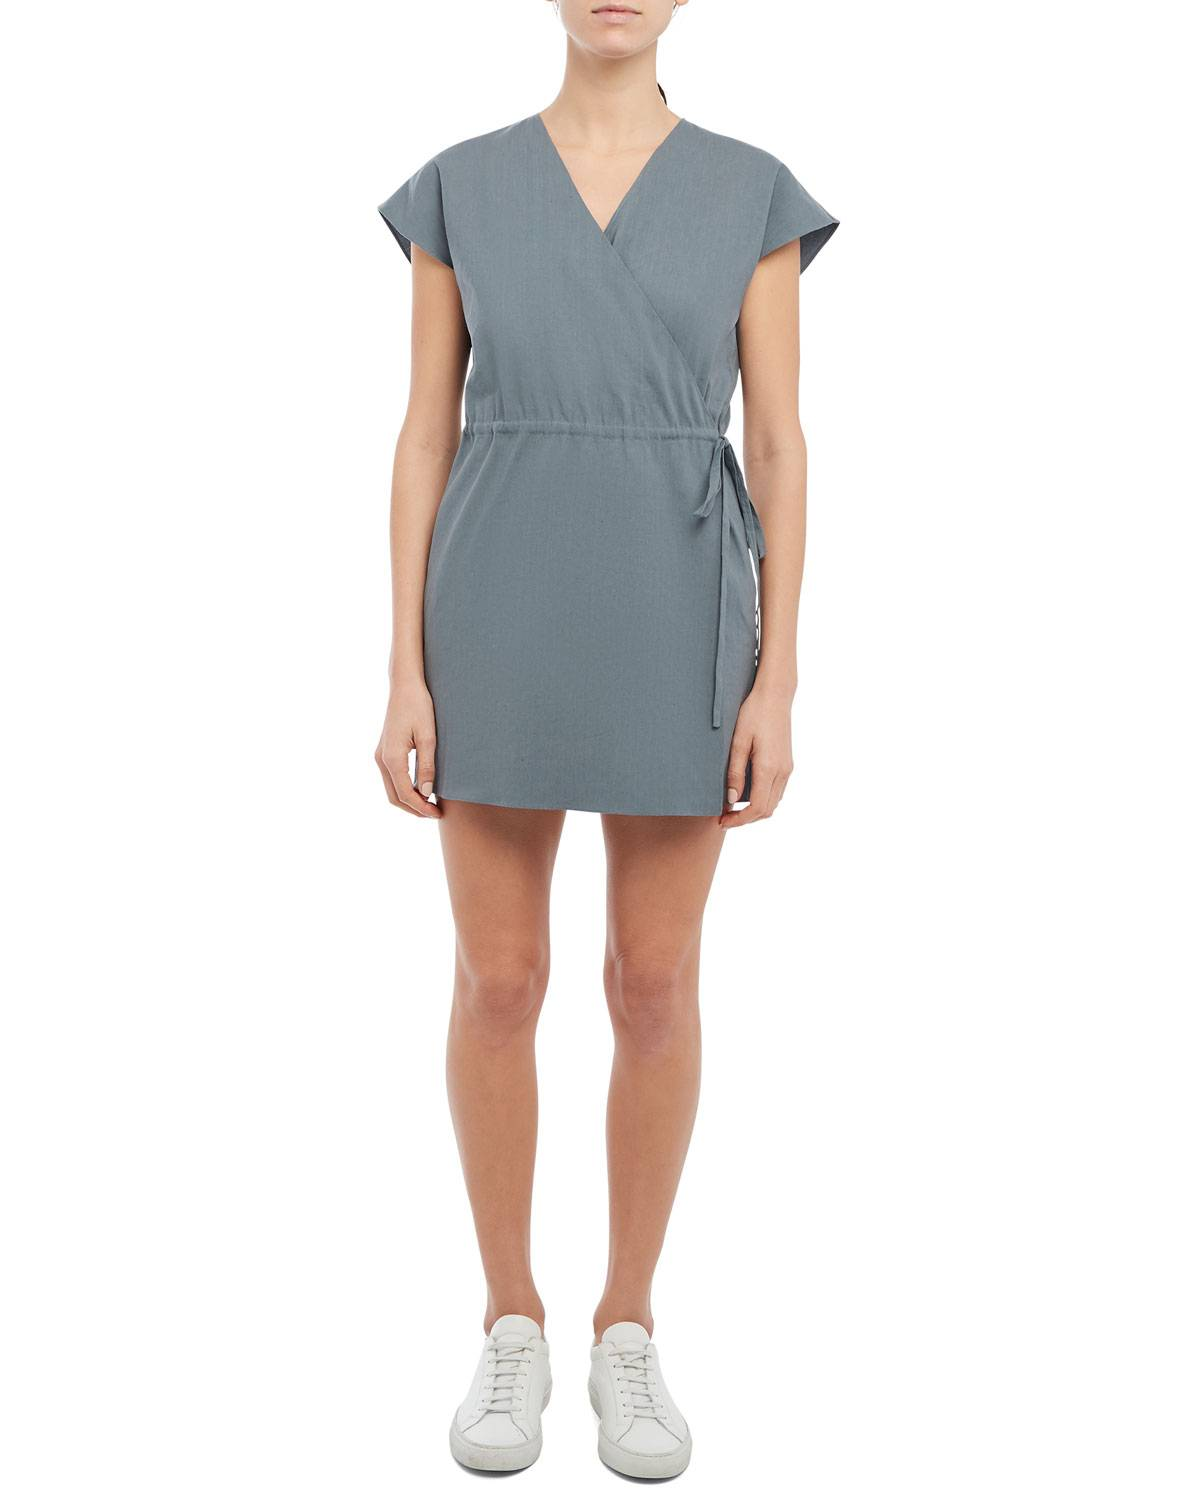 Theory Short-Sleeve Wrap Romper - Size: 2